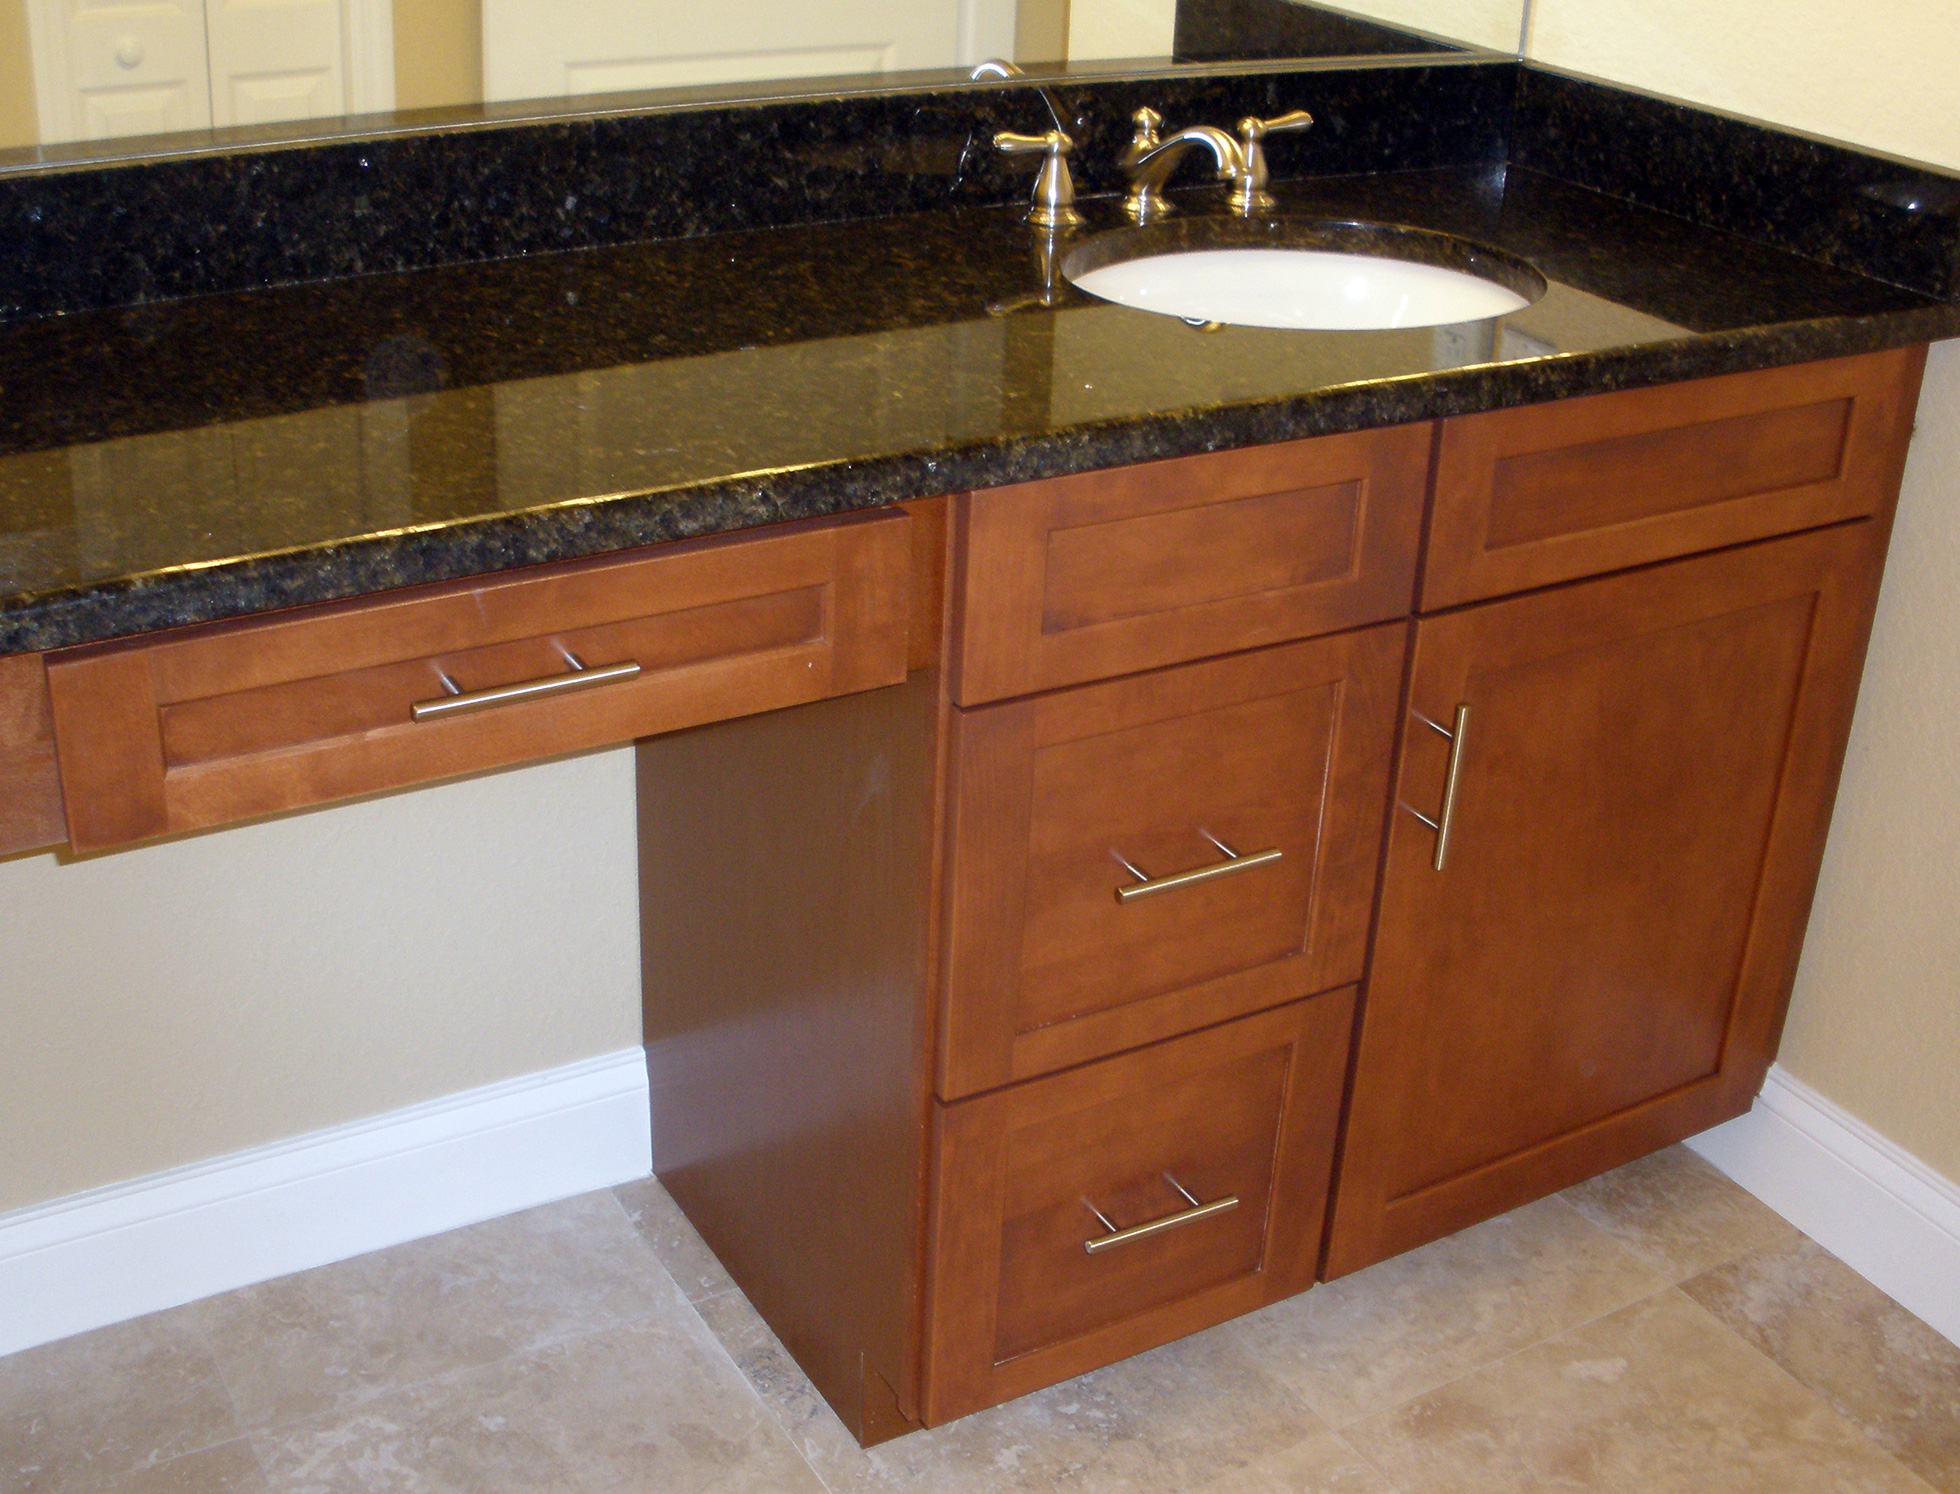 Bathroom vanity with off-center sink